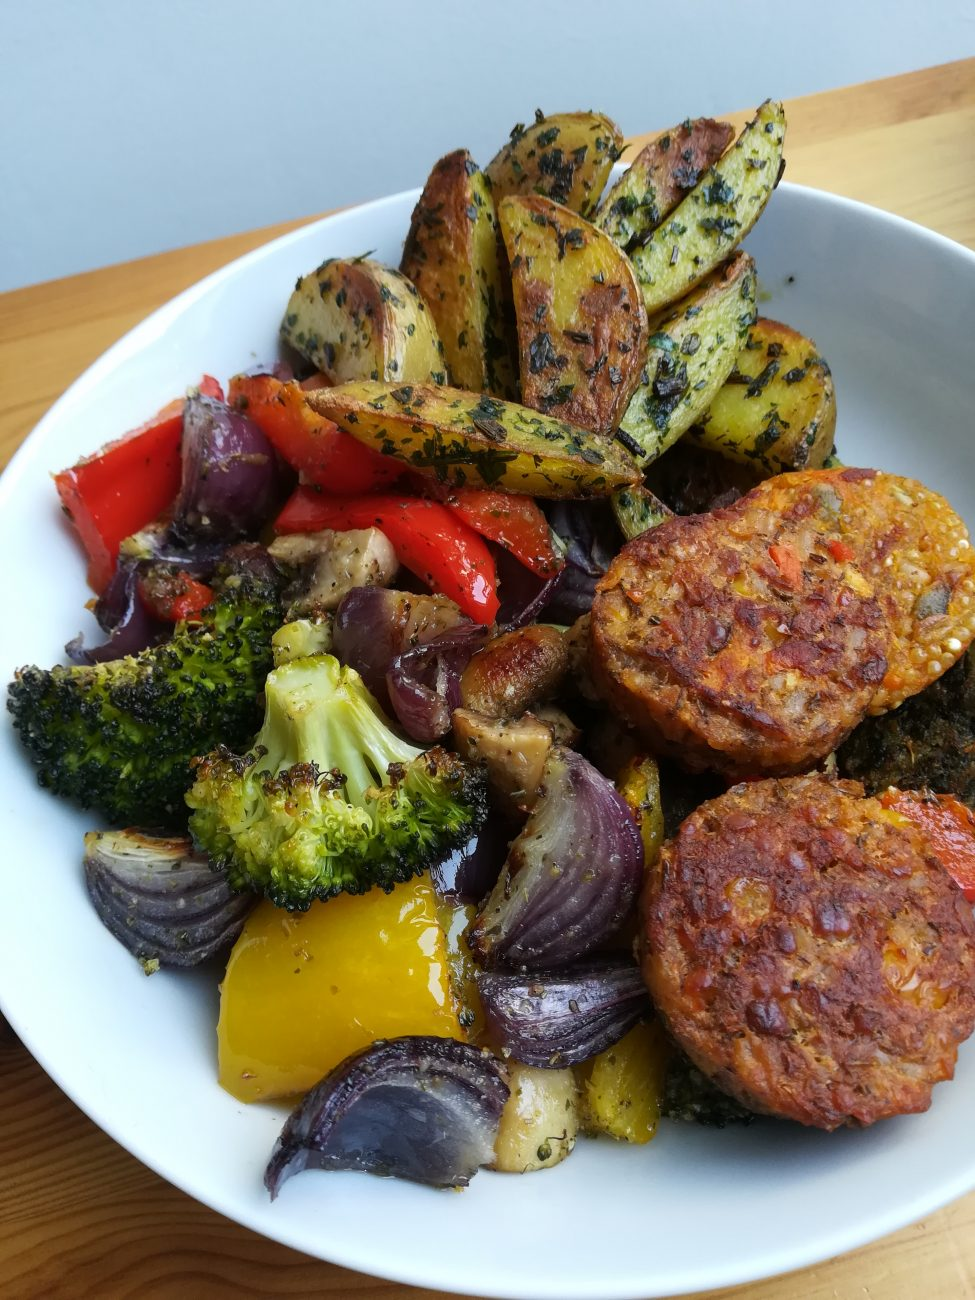 Roasted vegetables with potato wedges